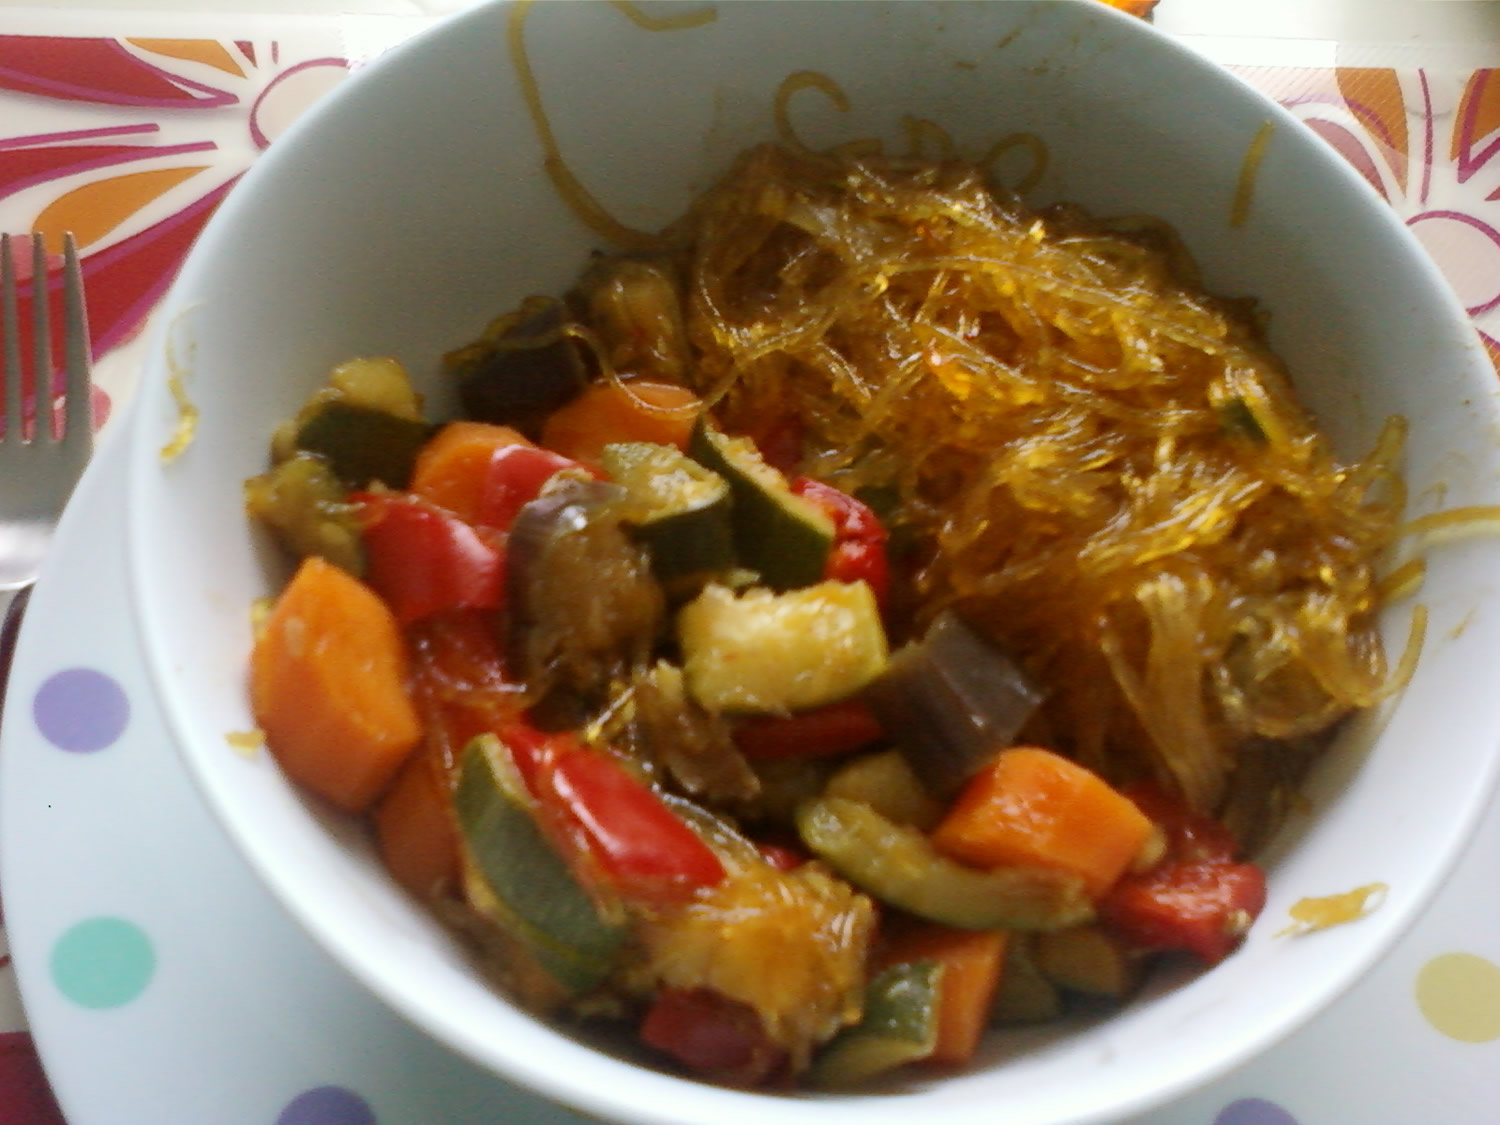 Soy noodles with vegetables